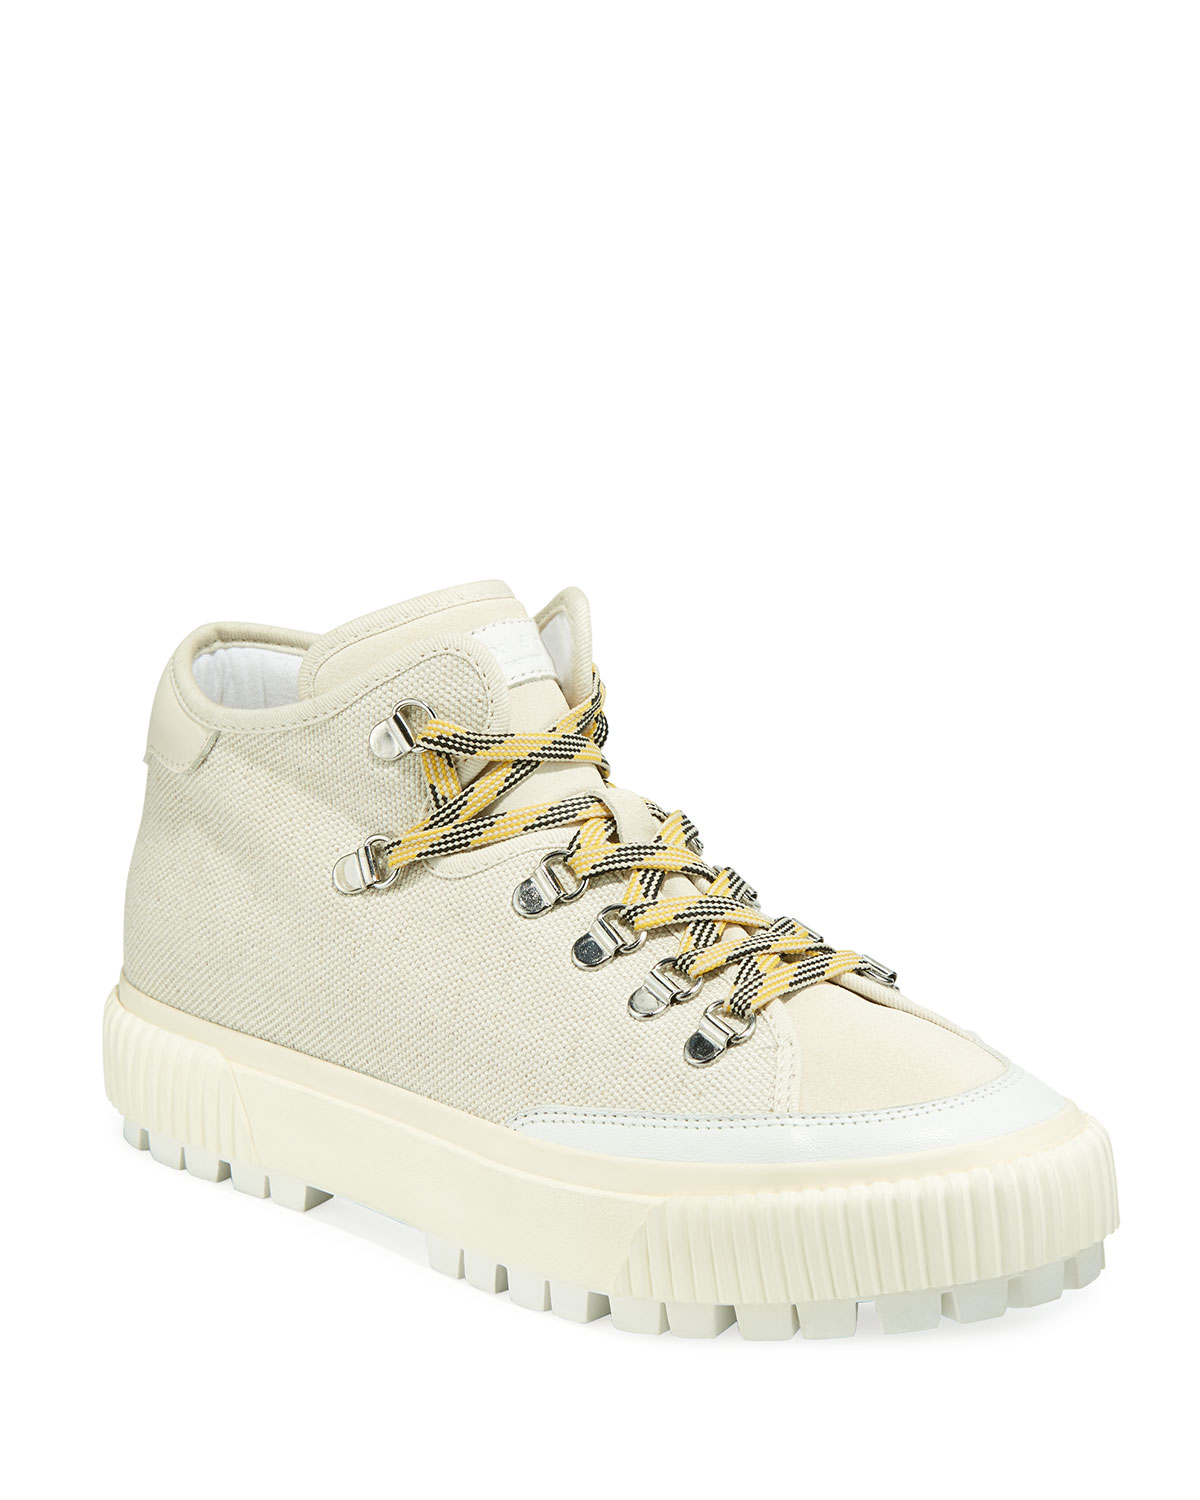 Army Hiker Canvas Mid-Top Sneakers with Leather